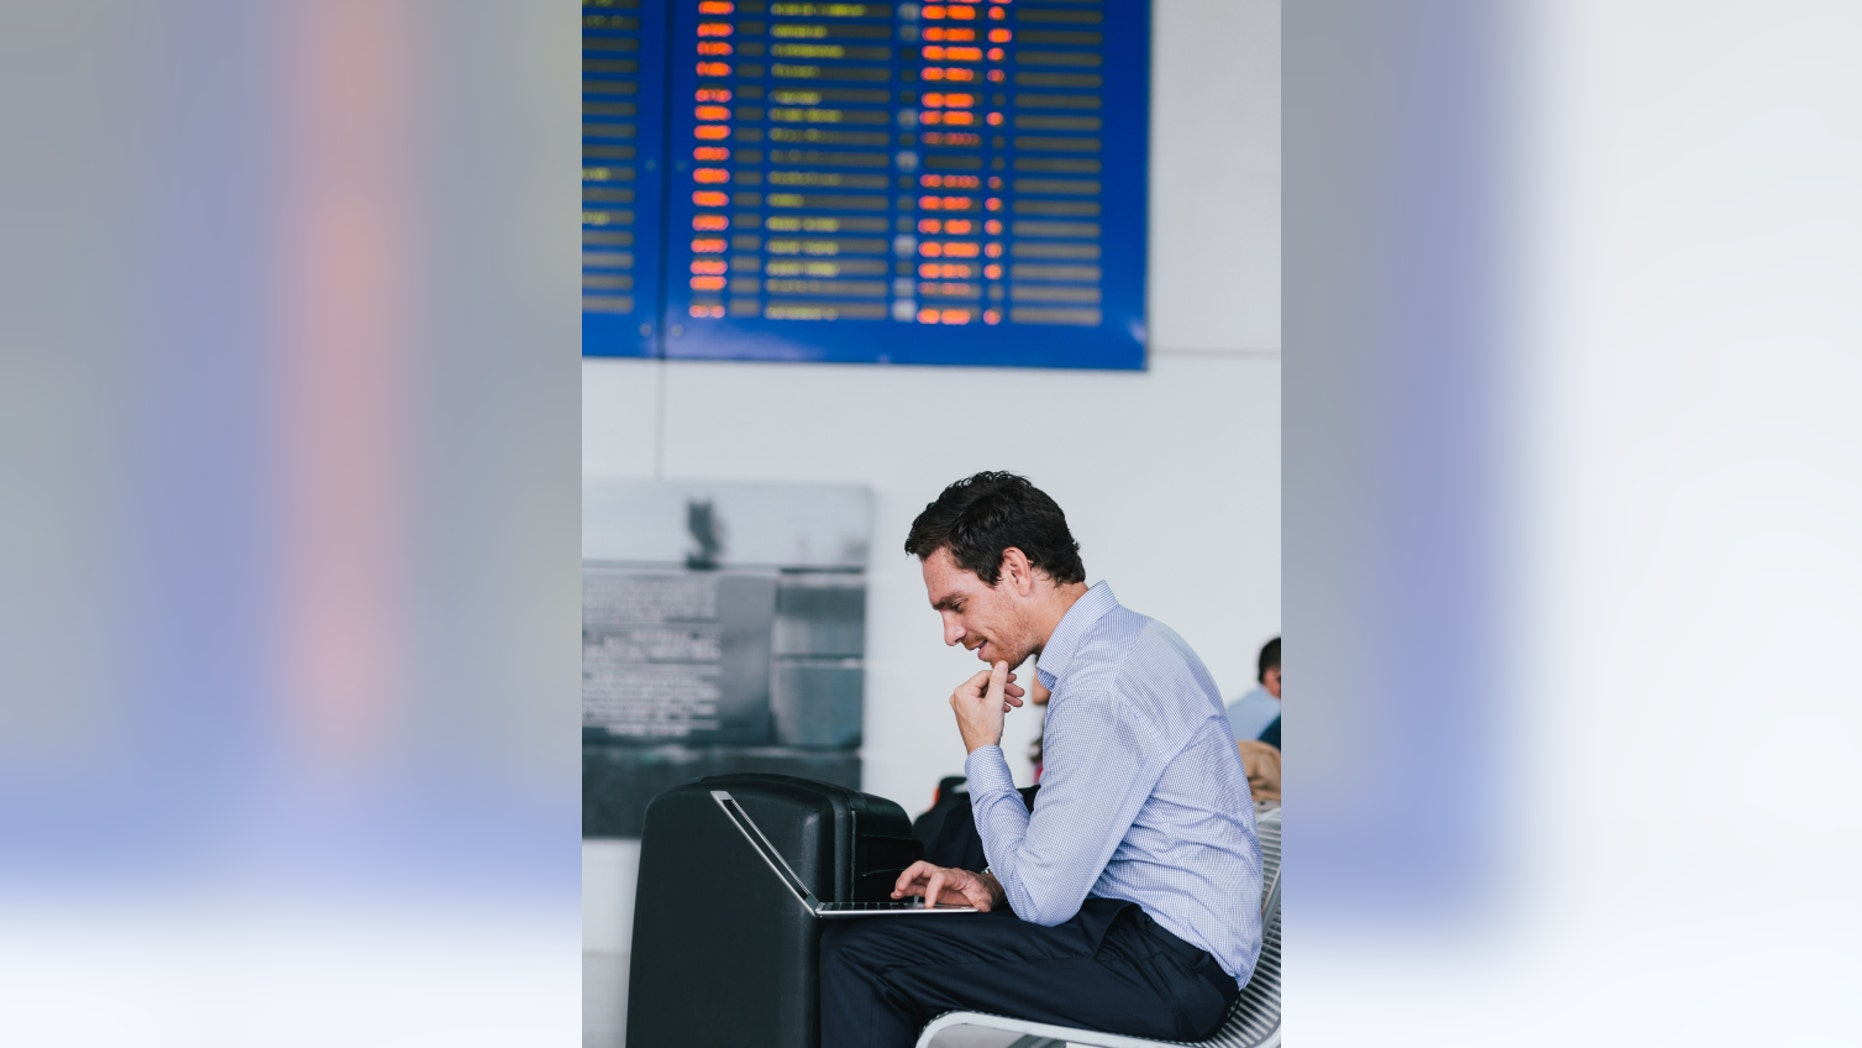 5 airport Wi-Fi hacks you need to know | Fox News